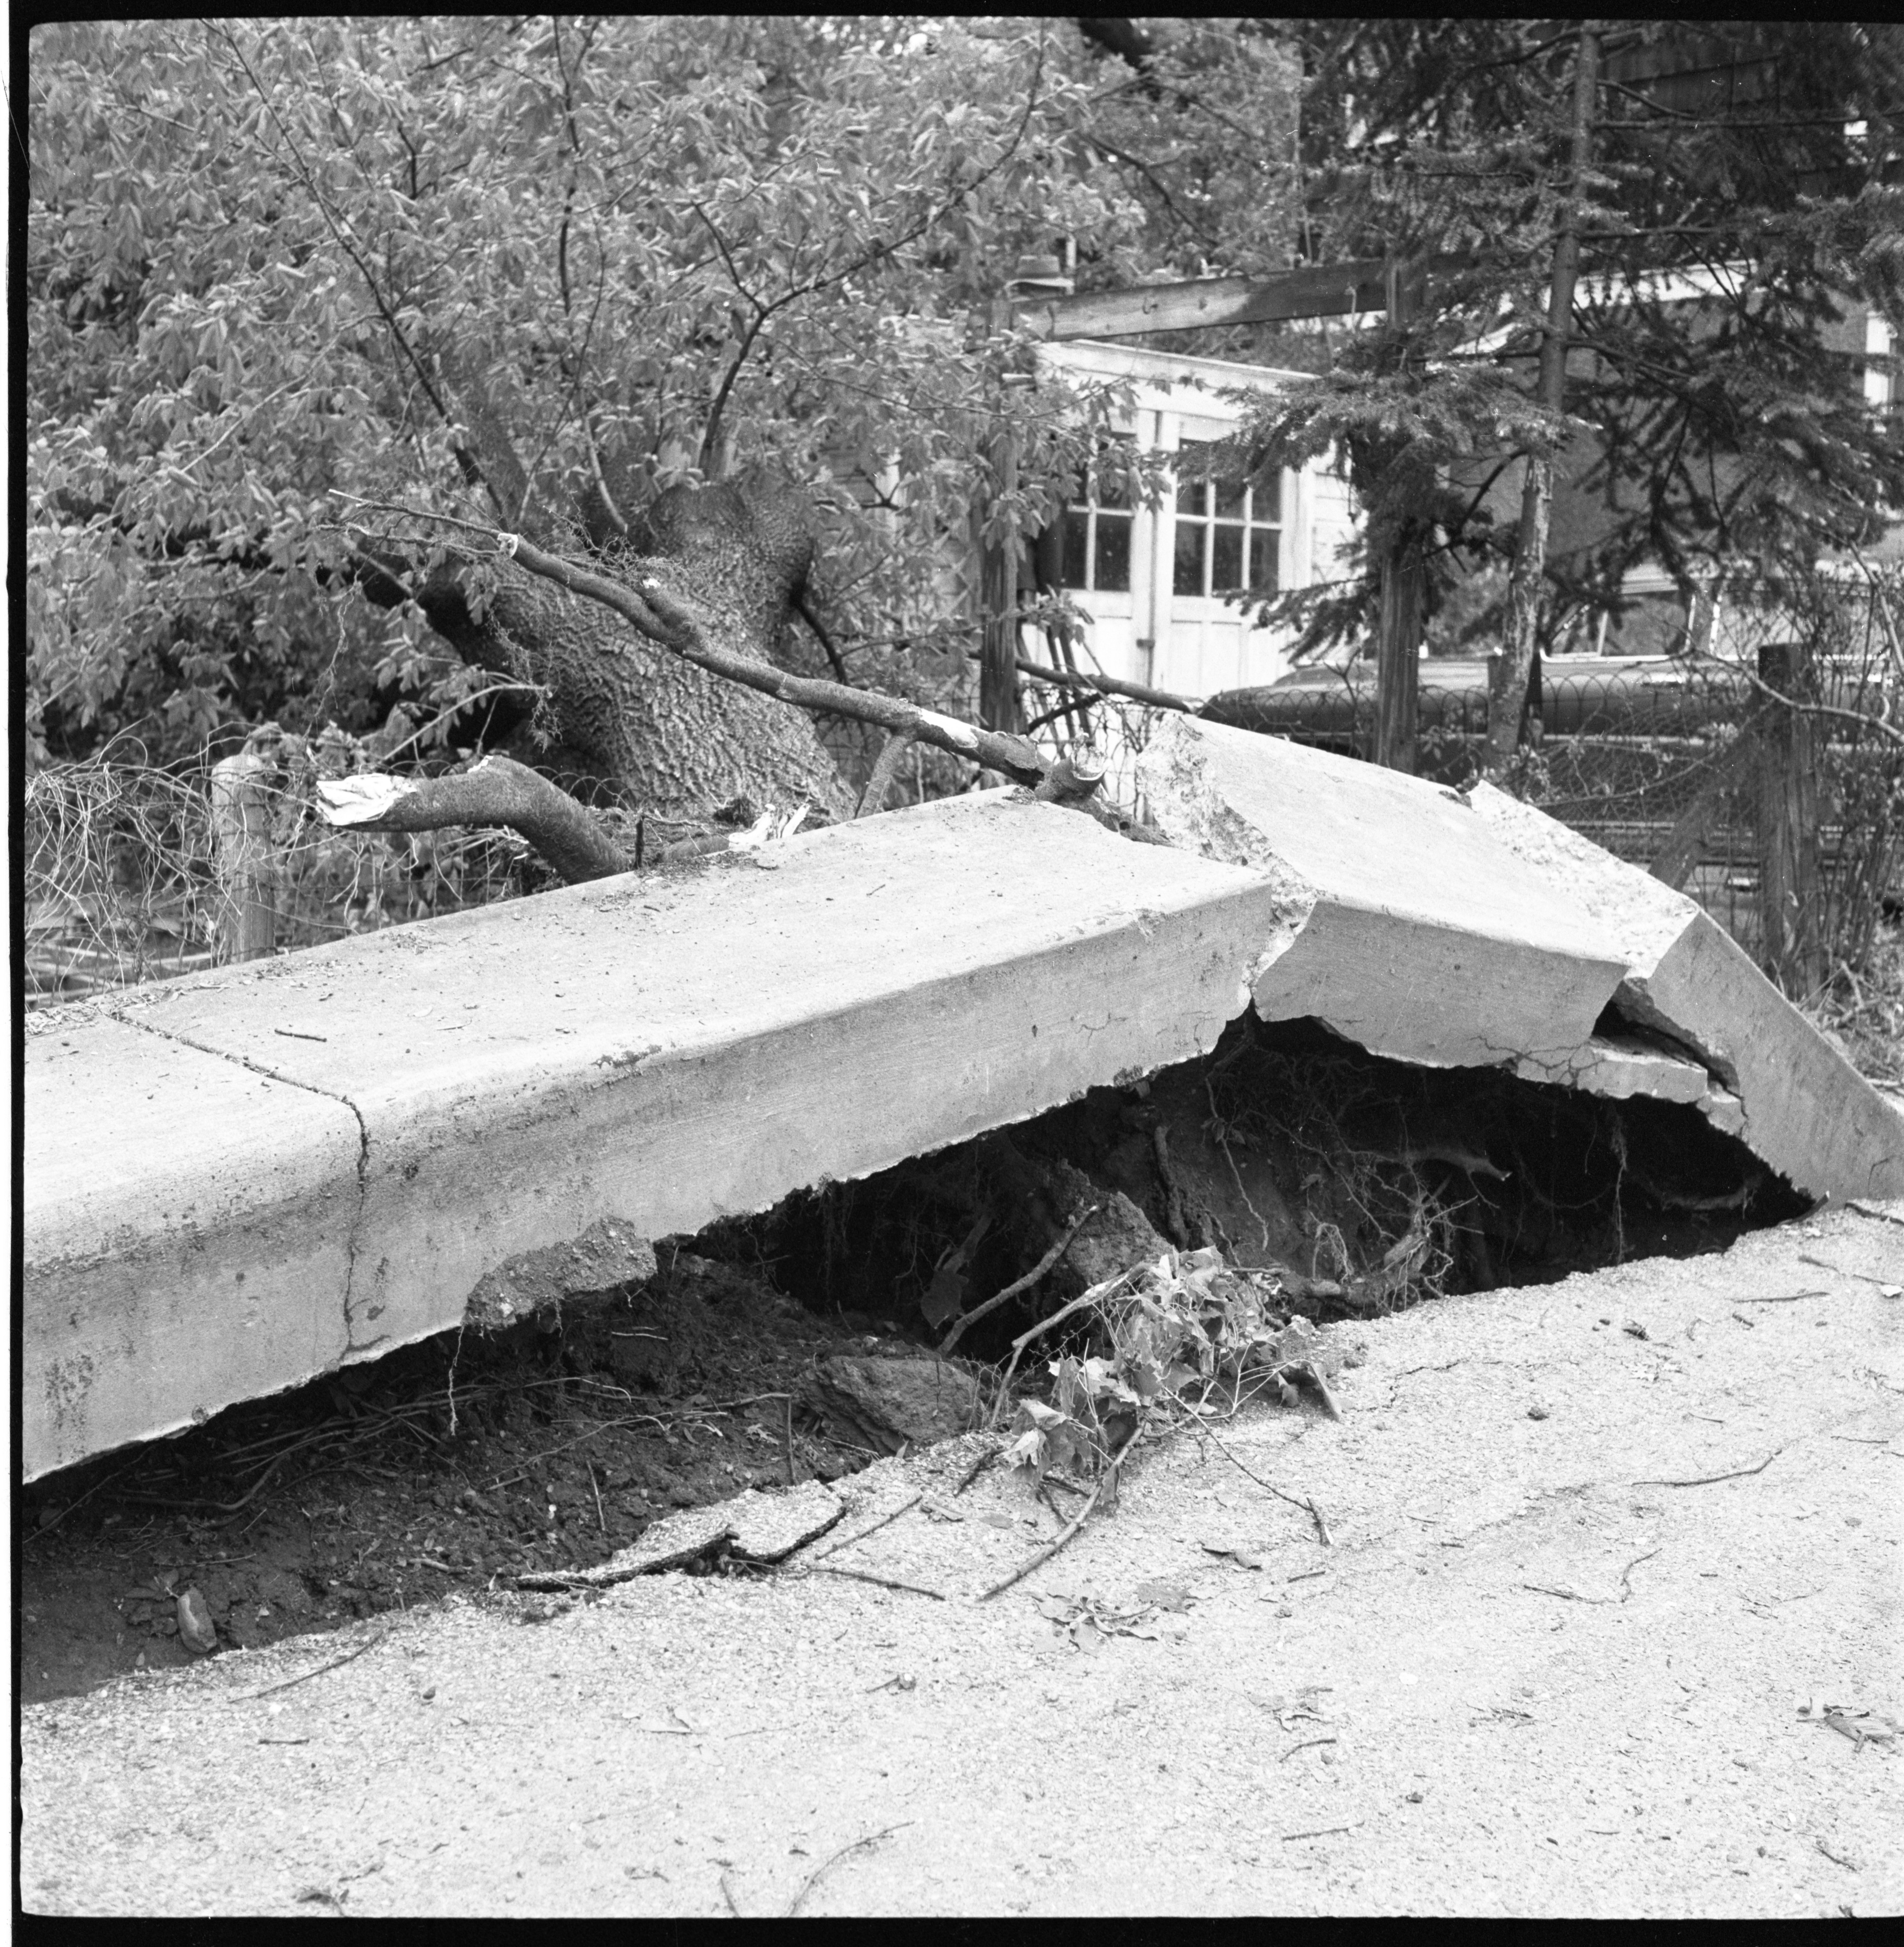 Remains Of An Uprooted Tree & Sidewalk Destroyed By The Windstorm, May 1959 image